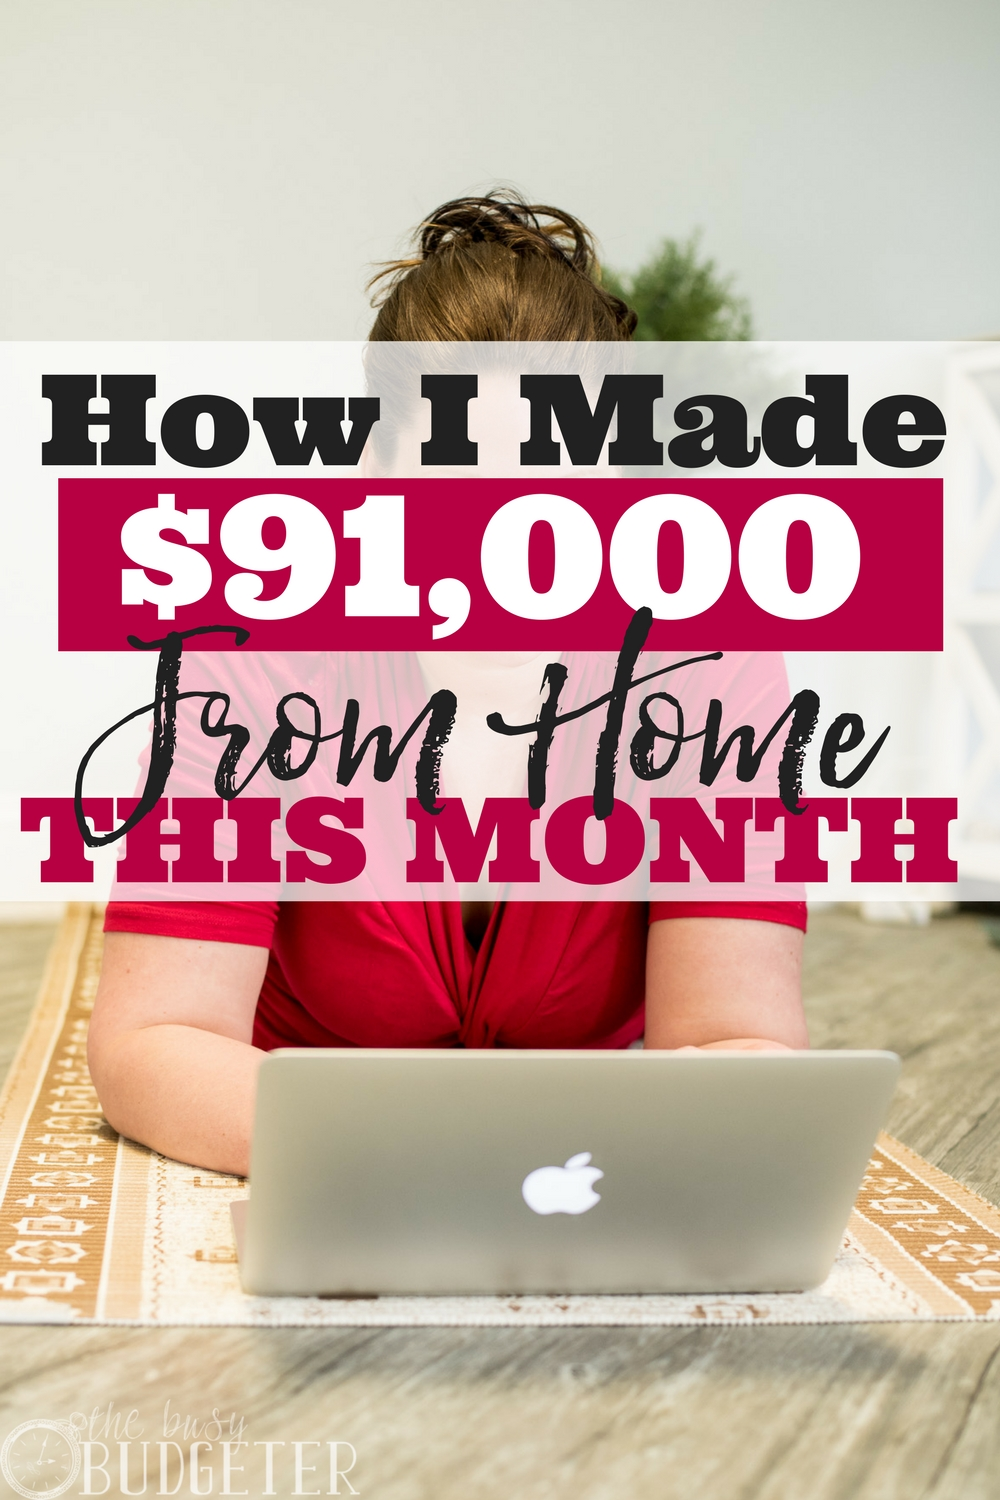 This is incredible, It's amazing how much money you can make from home. I love being able to see what works and what doesn't when it comes to growing your blog and your business! Such a great article!